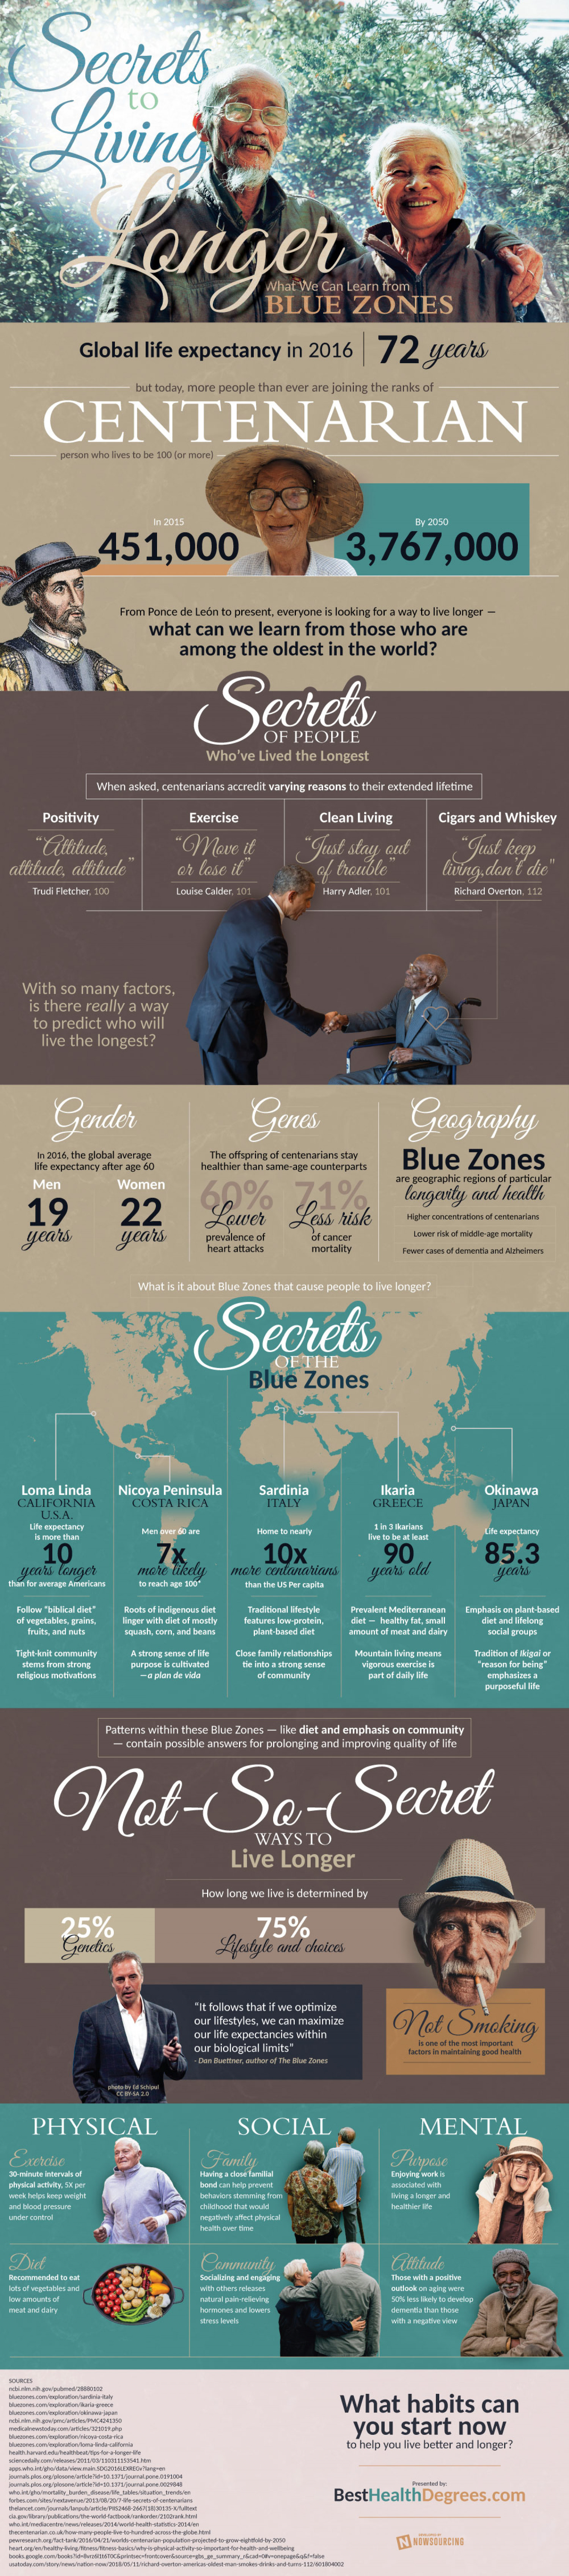 Secrets Of The Blue Zones Infographic